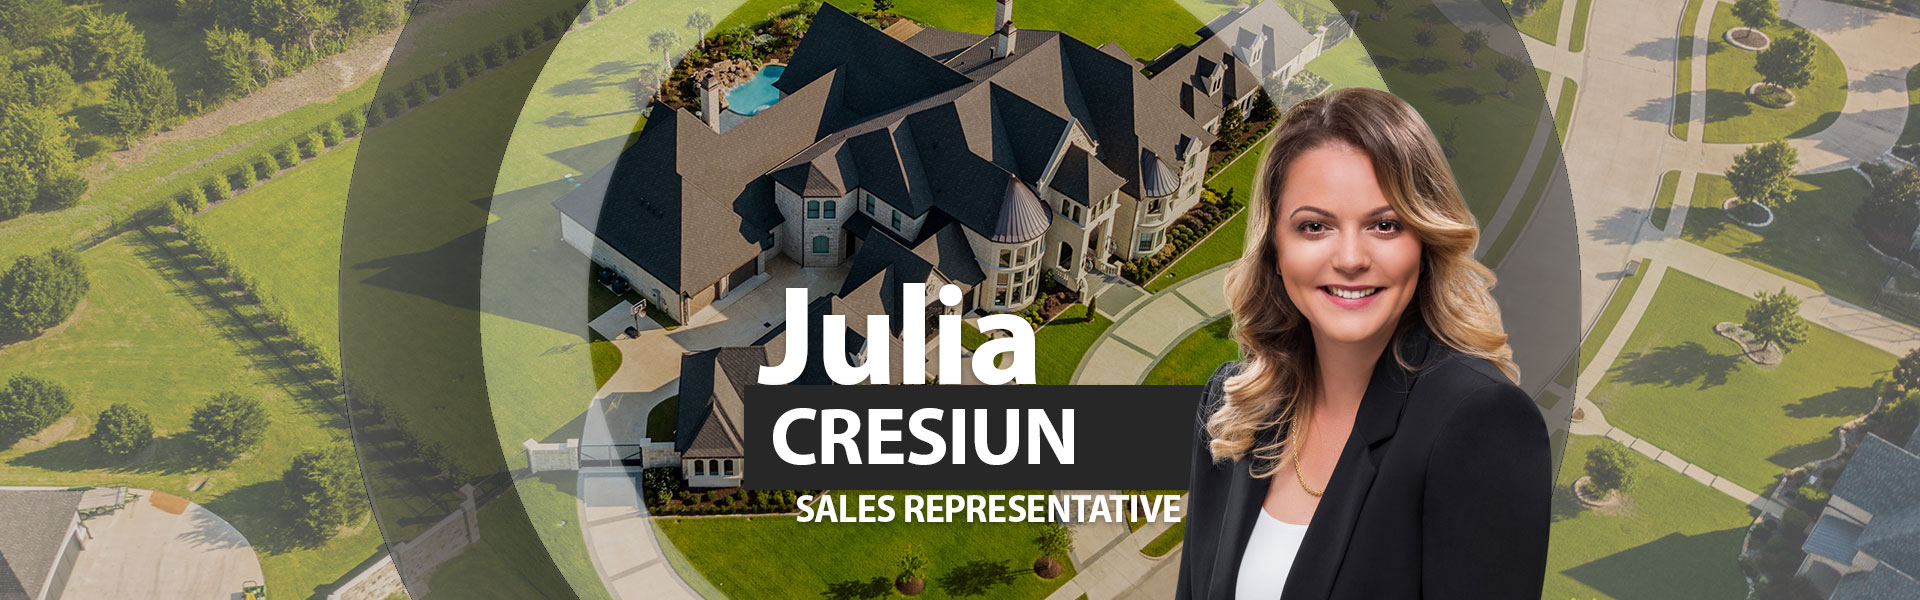 Real-Estate-Broker-Julia-Cresiun